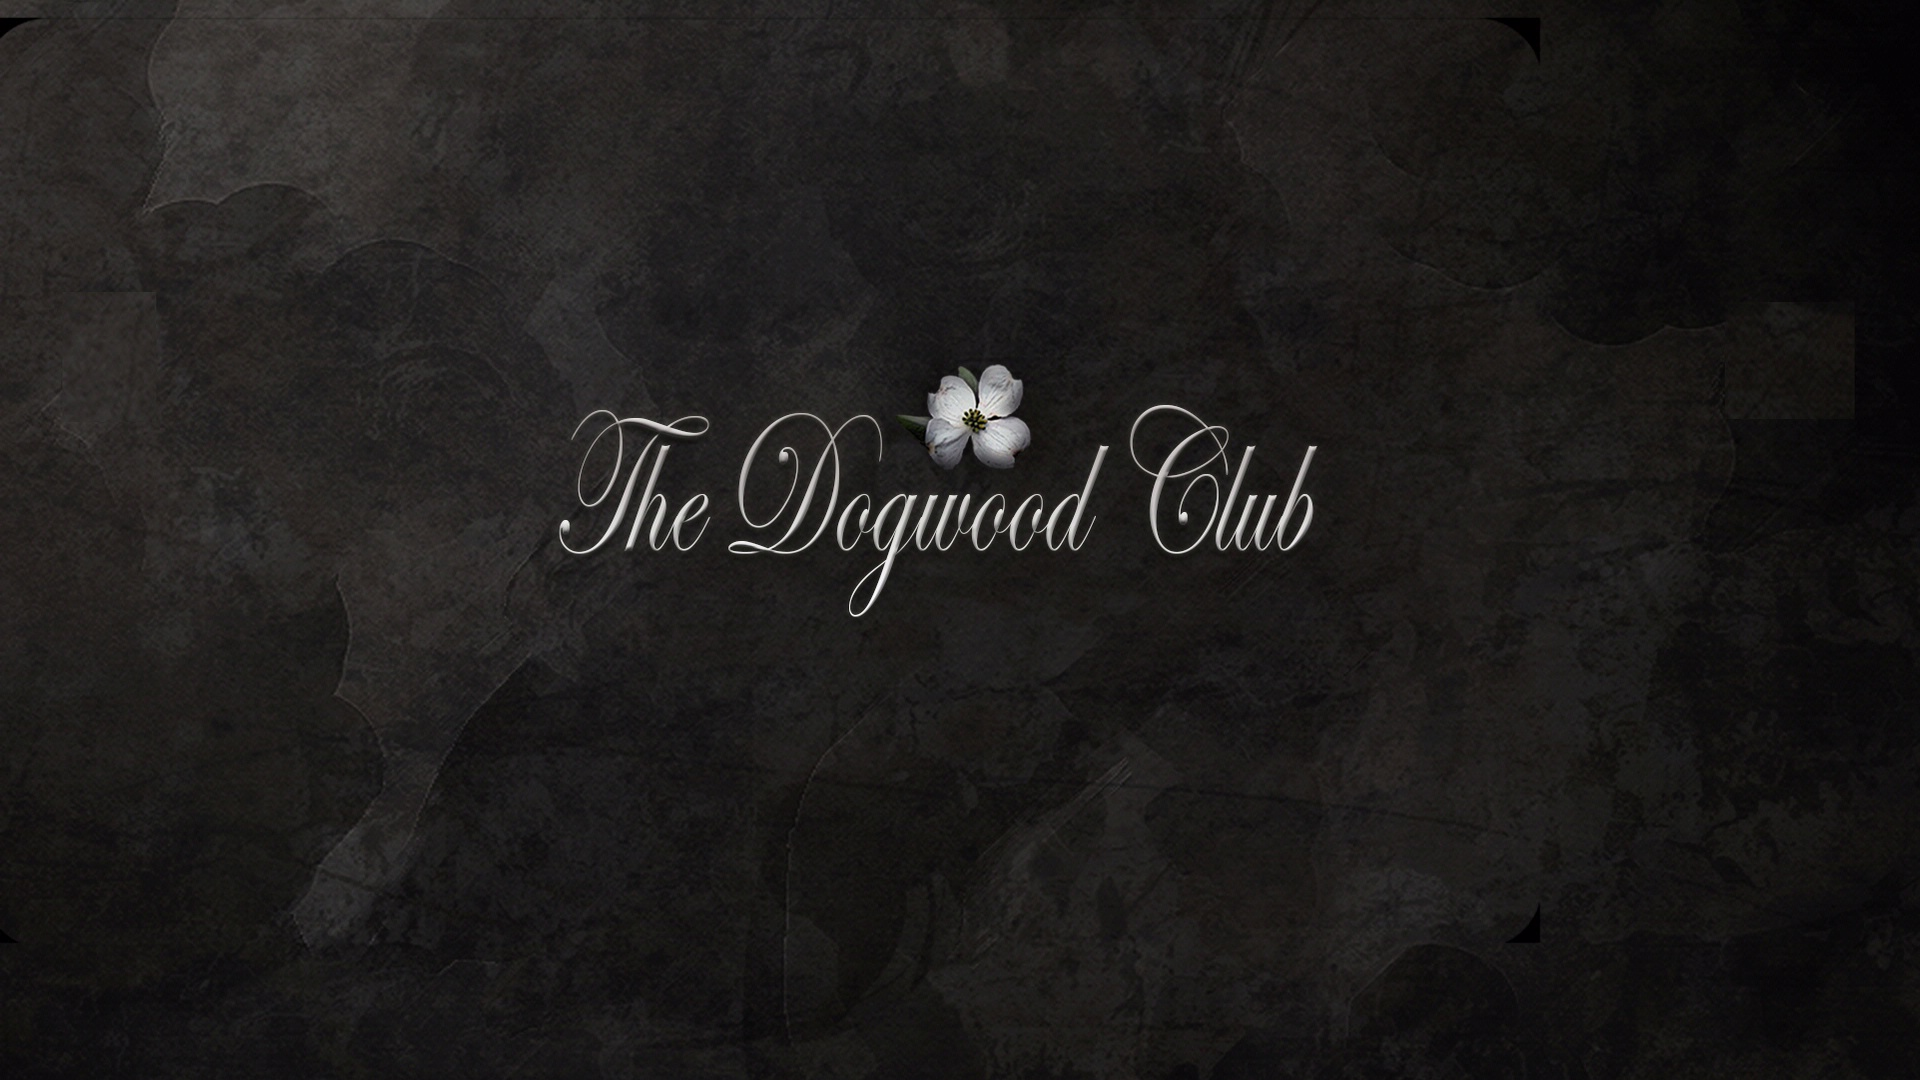 the dogwood club logo